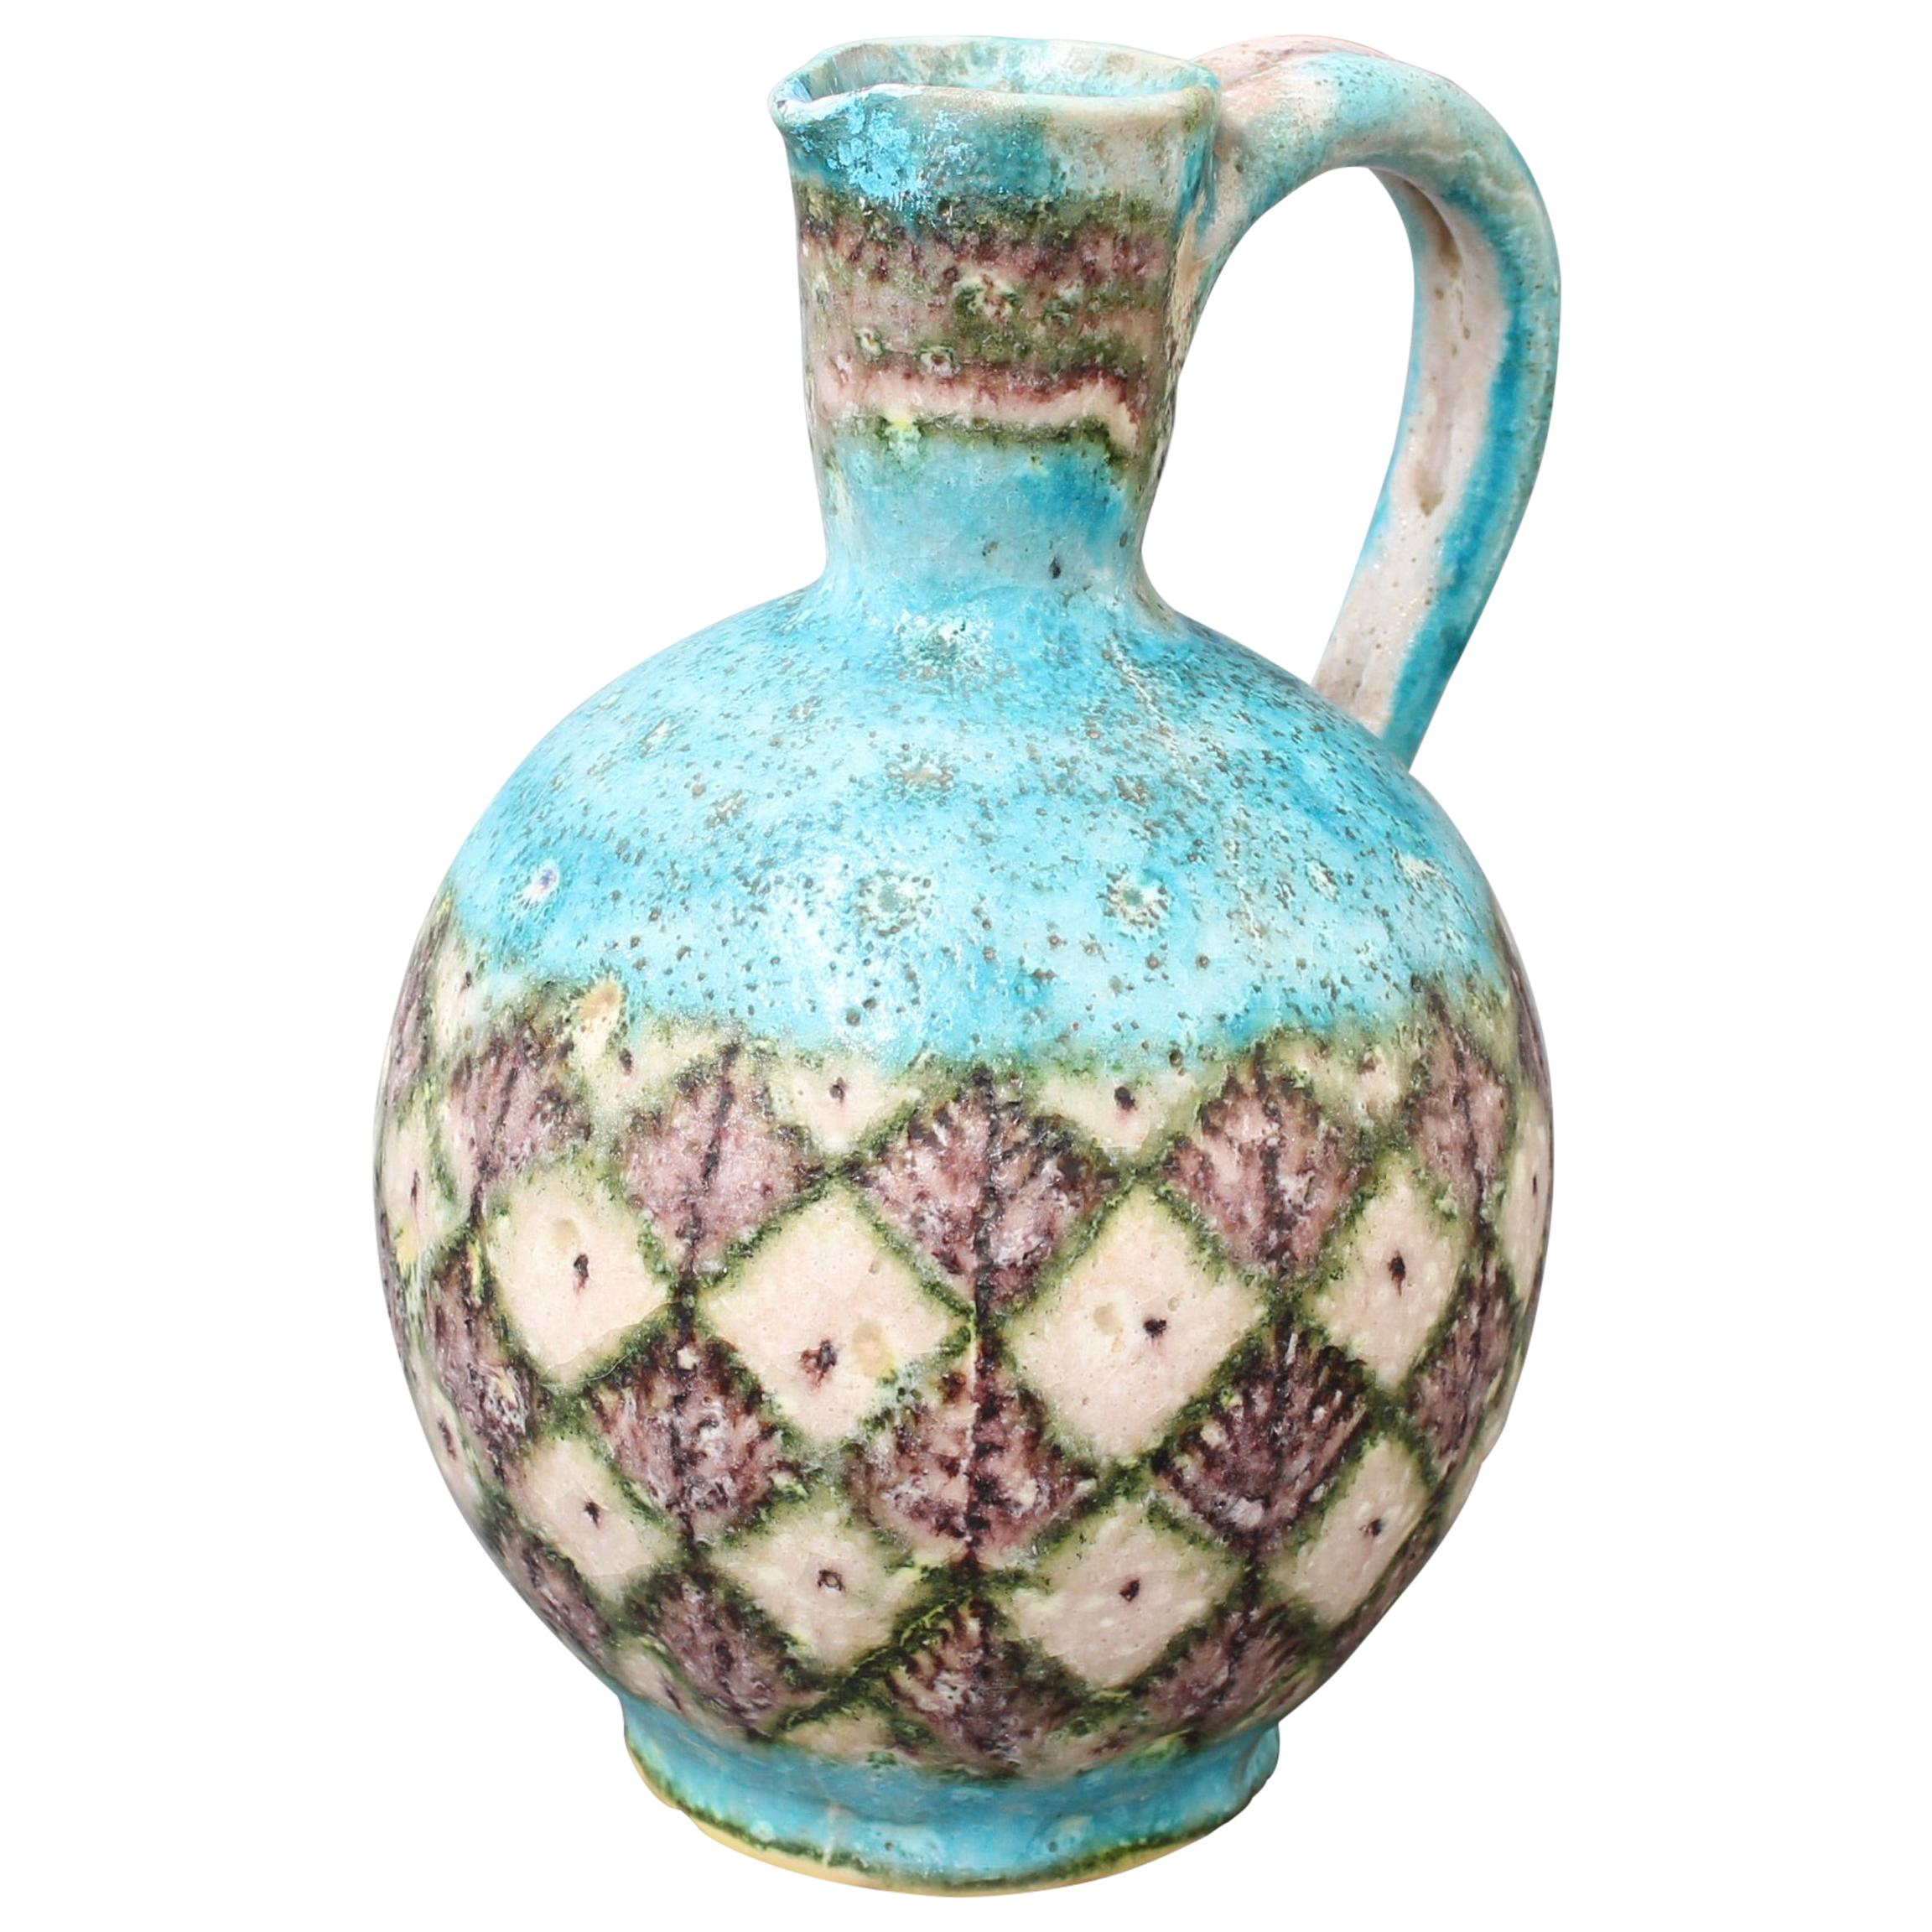 Midcentury Italian Decorative Ceramic Jug by Guido Gambone, circa 1950s